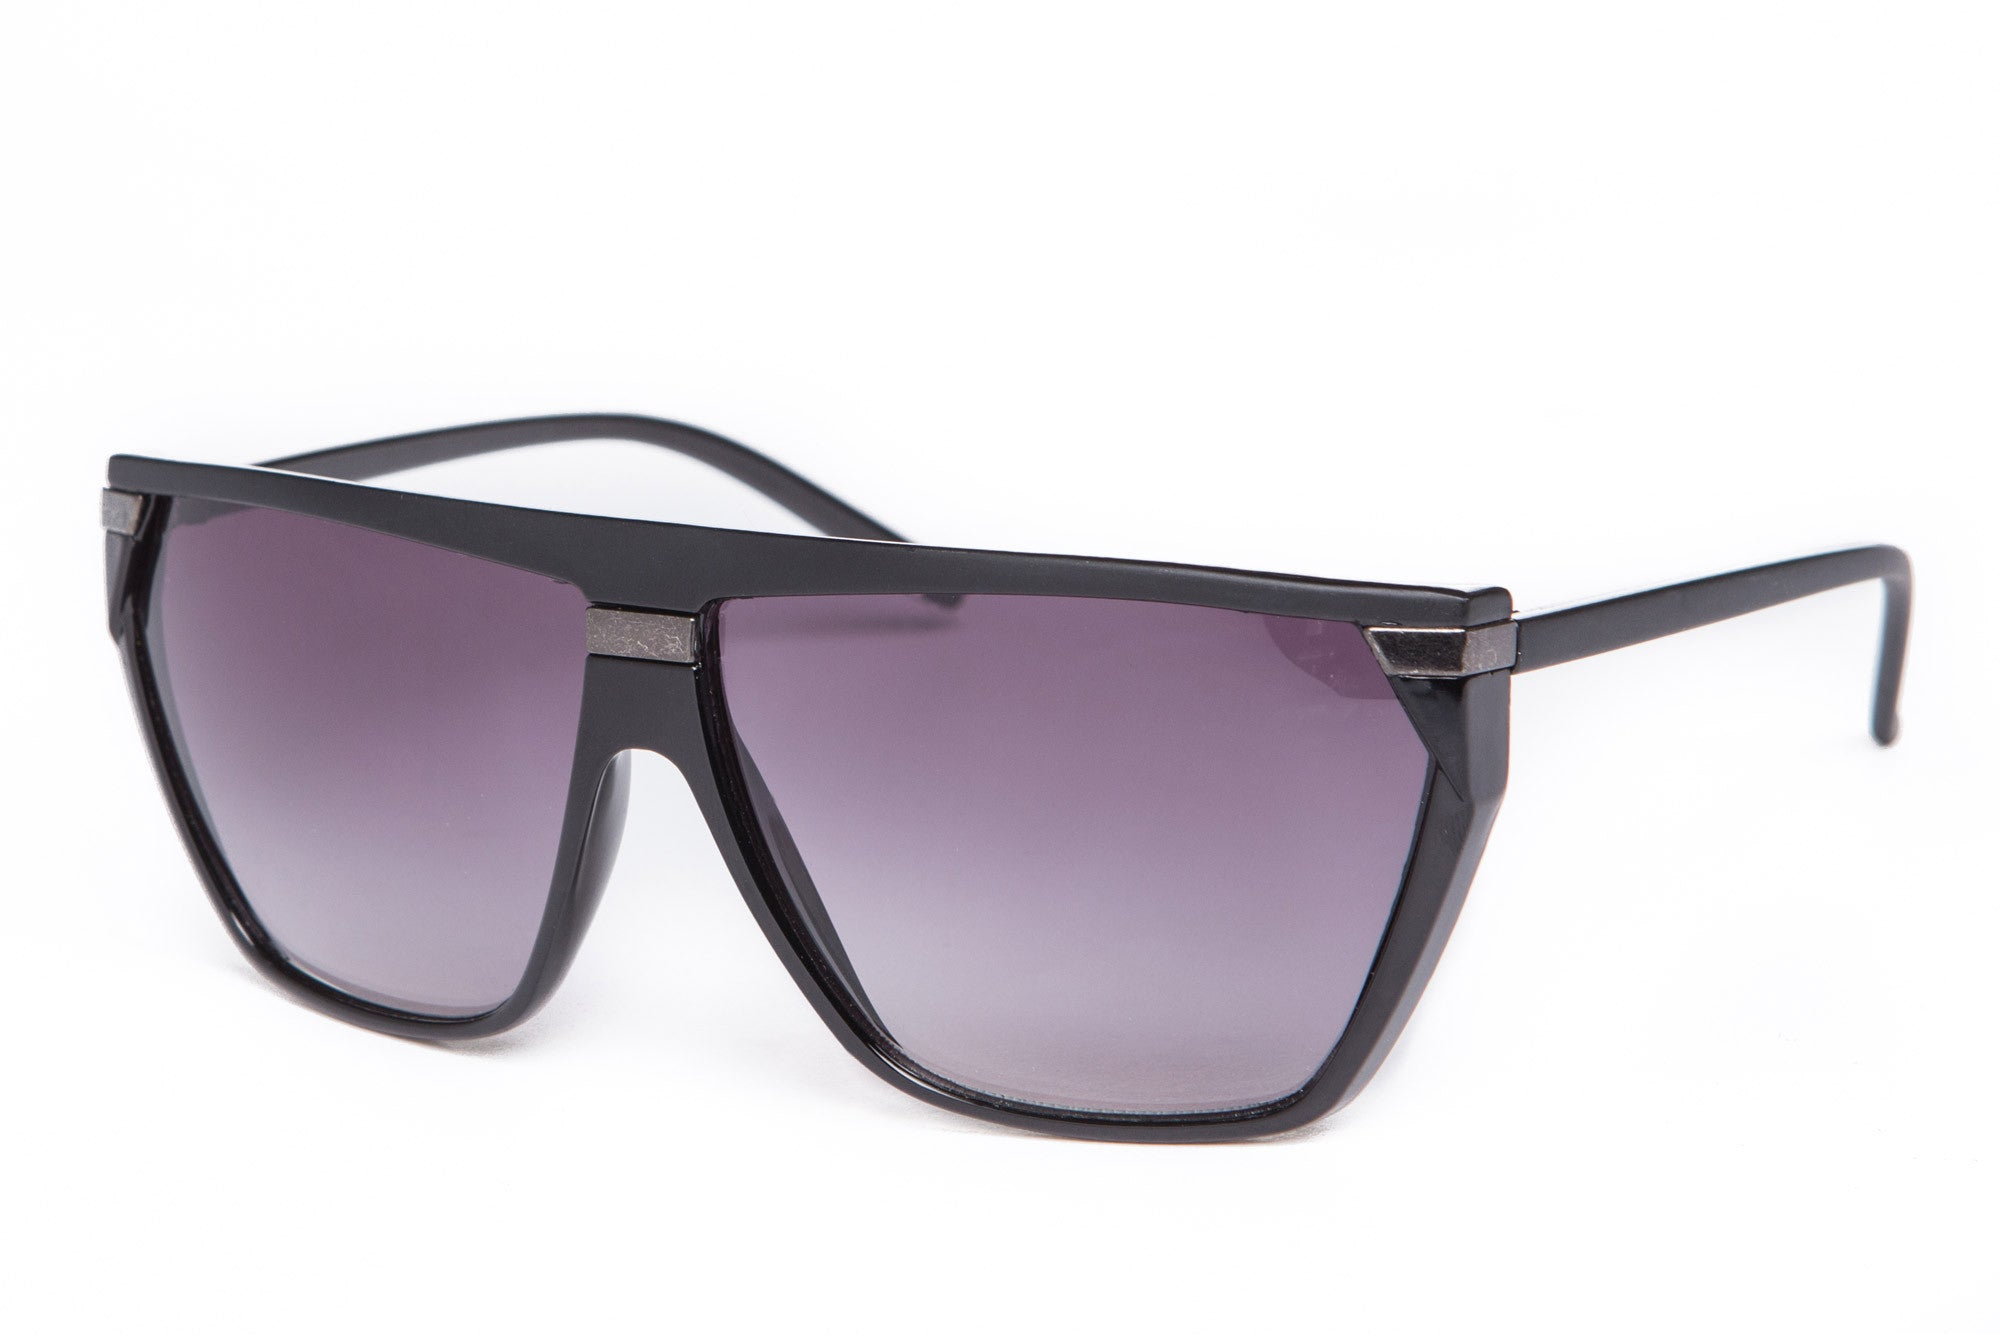 Adam Retro Flat Top Sunglasses